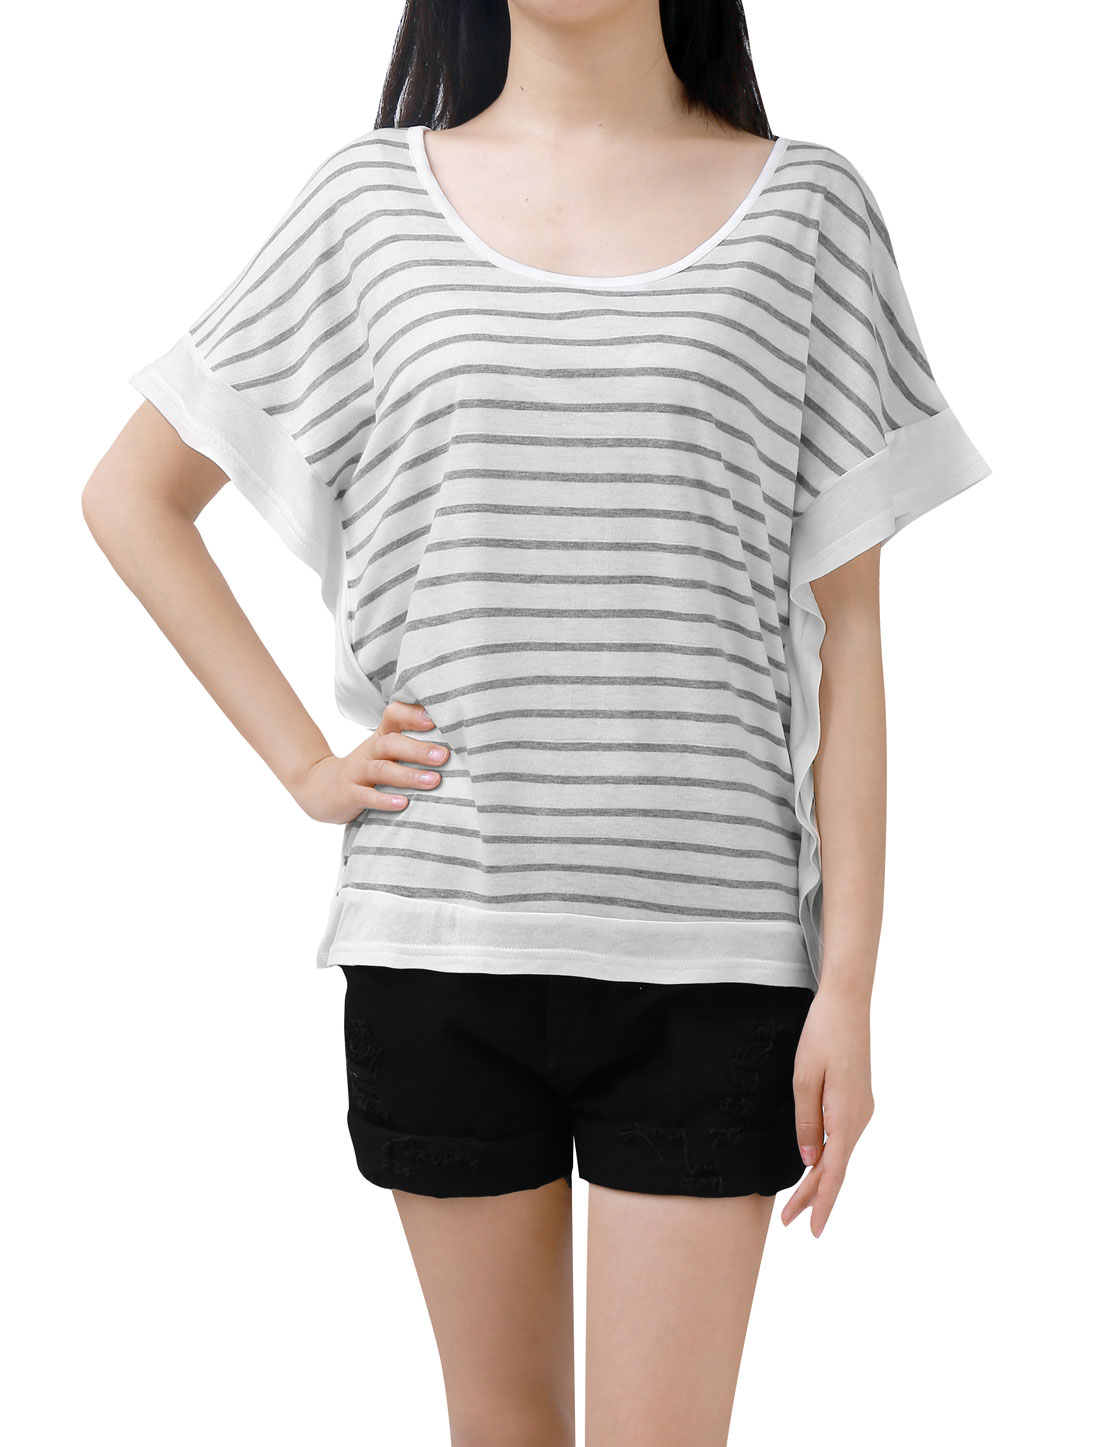 Women Scoop Neck Slipover Poncho Sleeve Stripes T-shirt White Gray L